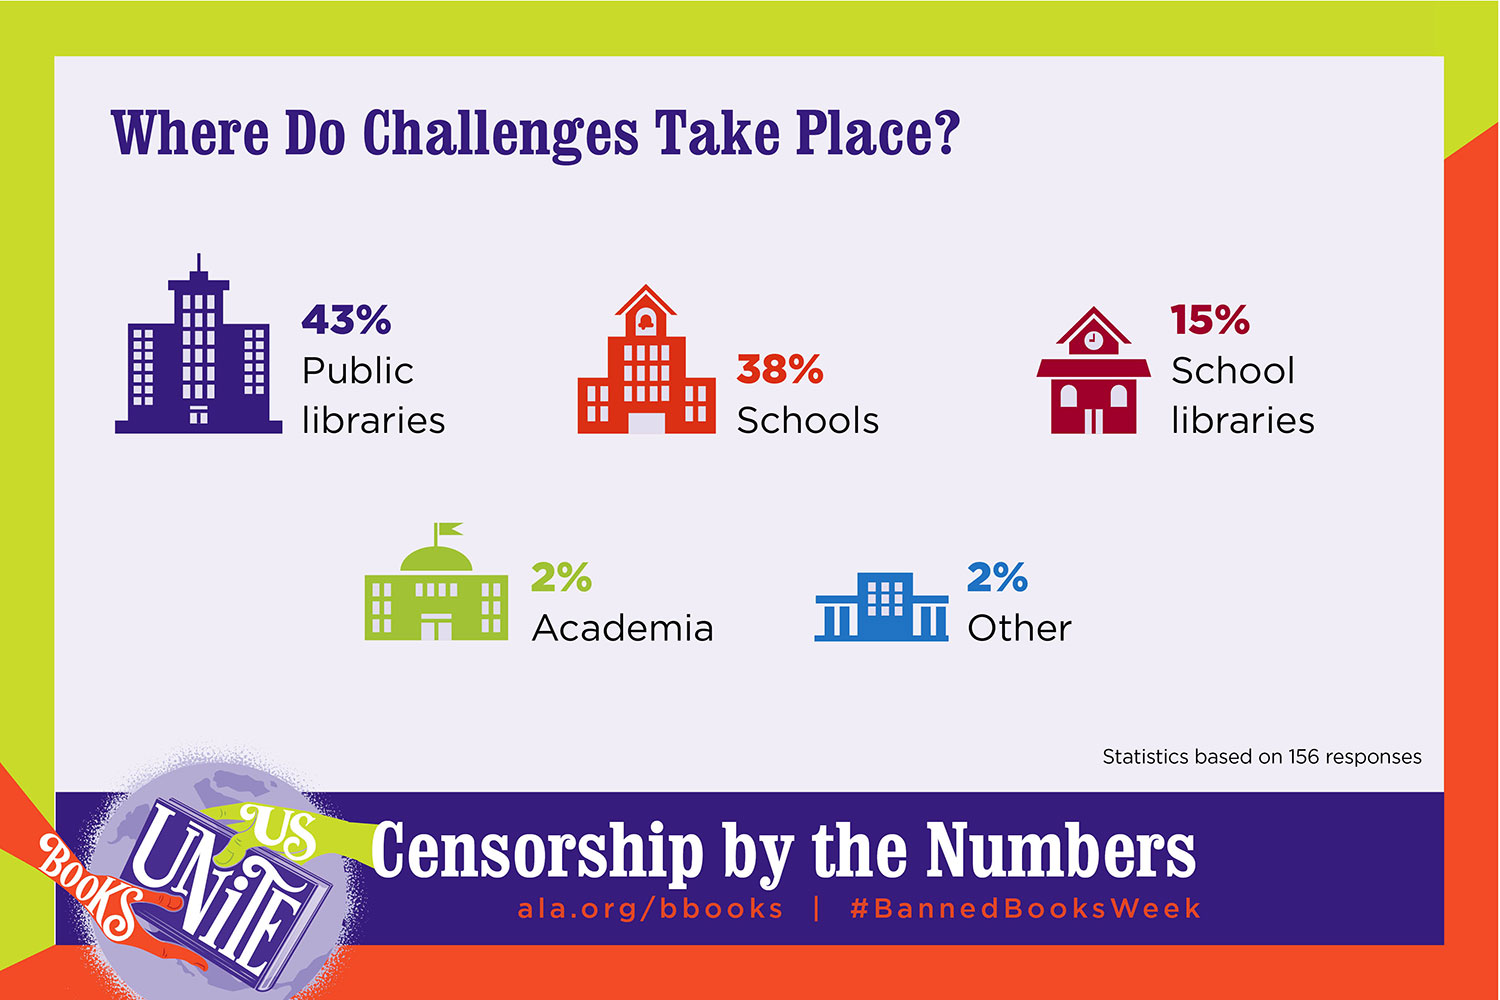 Where do Challenges take place? 43% public libraries, 38% schools, 15% school libraries, 2% academia and 2% other.